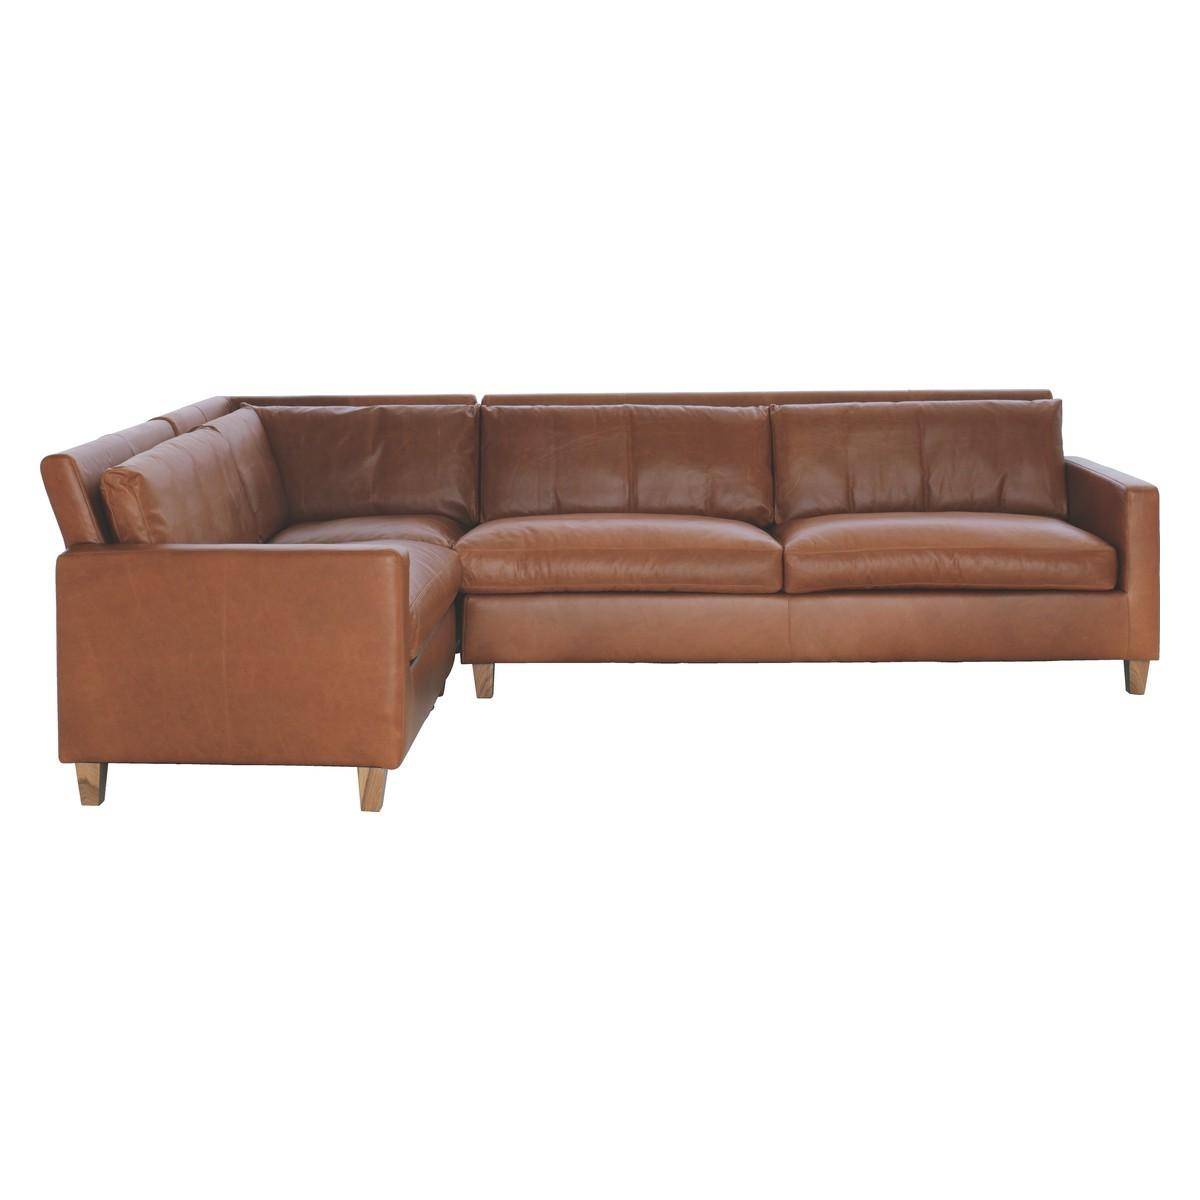 Chester Mid Tan Leather Right Arm Corner Sofa, Oak Stained Feet Regarding Corner Sofa Leather (View 17 of 20)